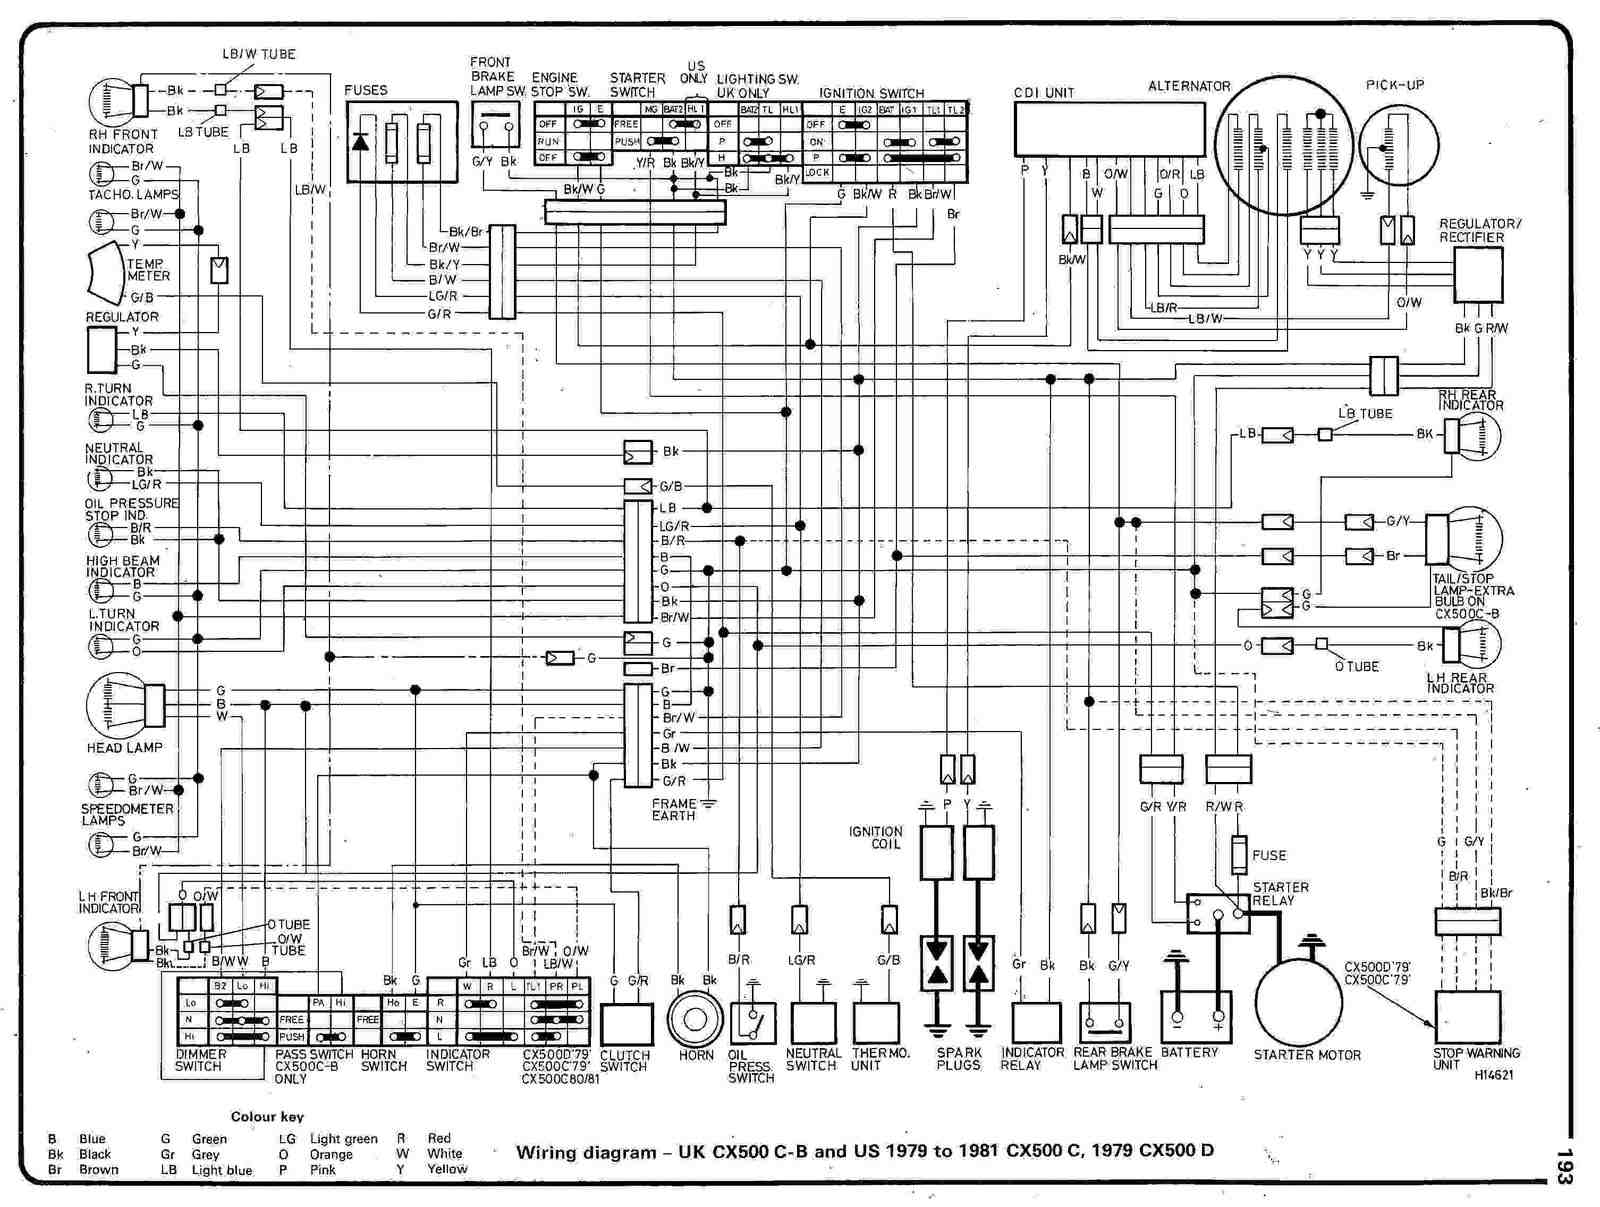 Honda X8r Wiring Diagram Circuit Wire Center Contemporary Cb750 Photo Best Images For Rh Oursweetbakeshop Info